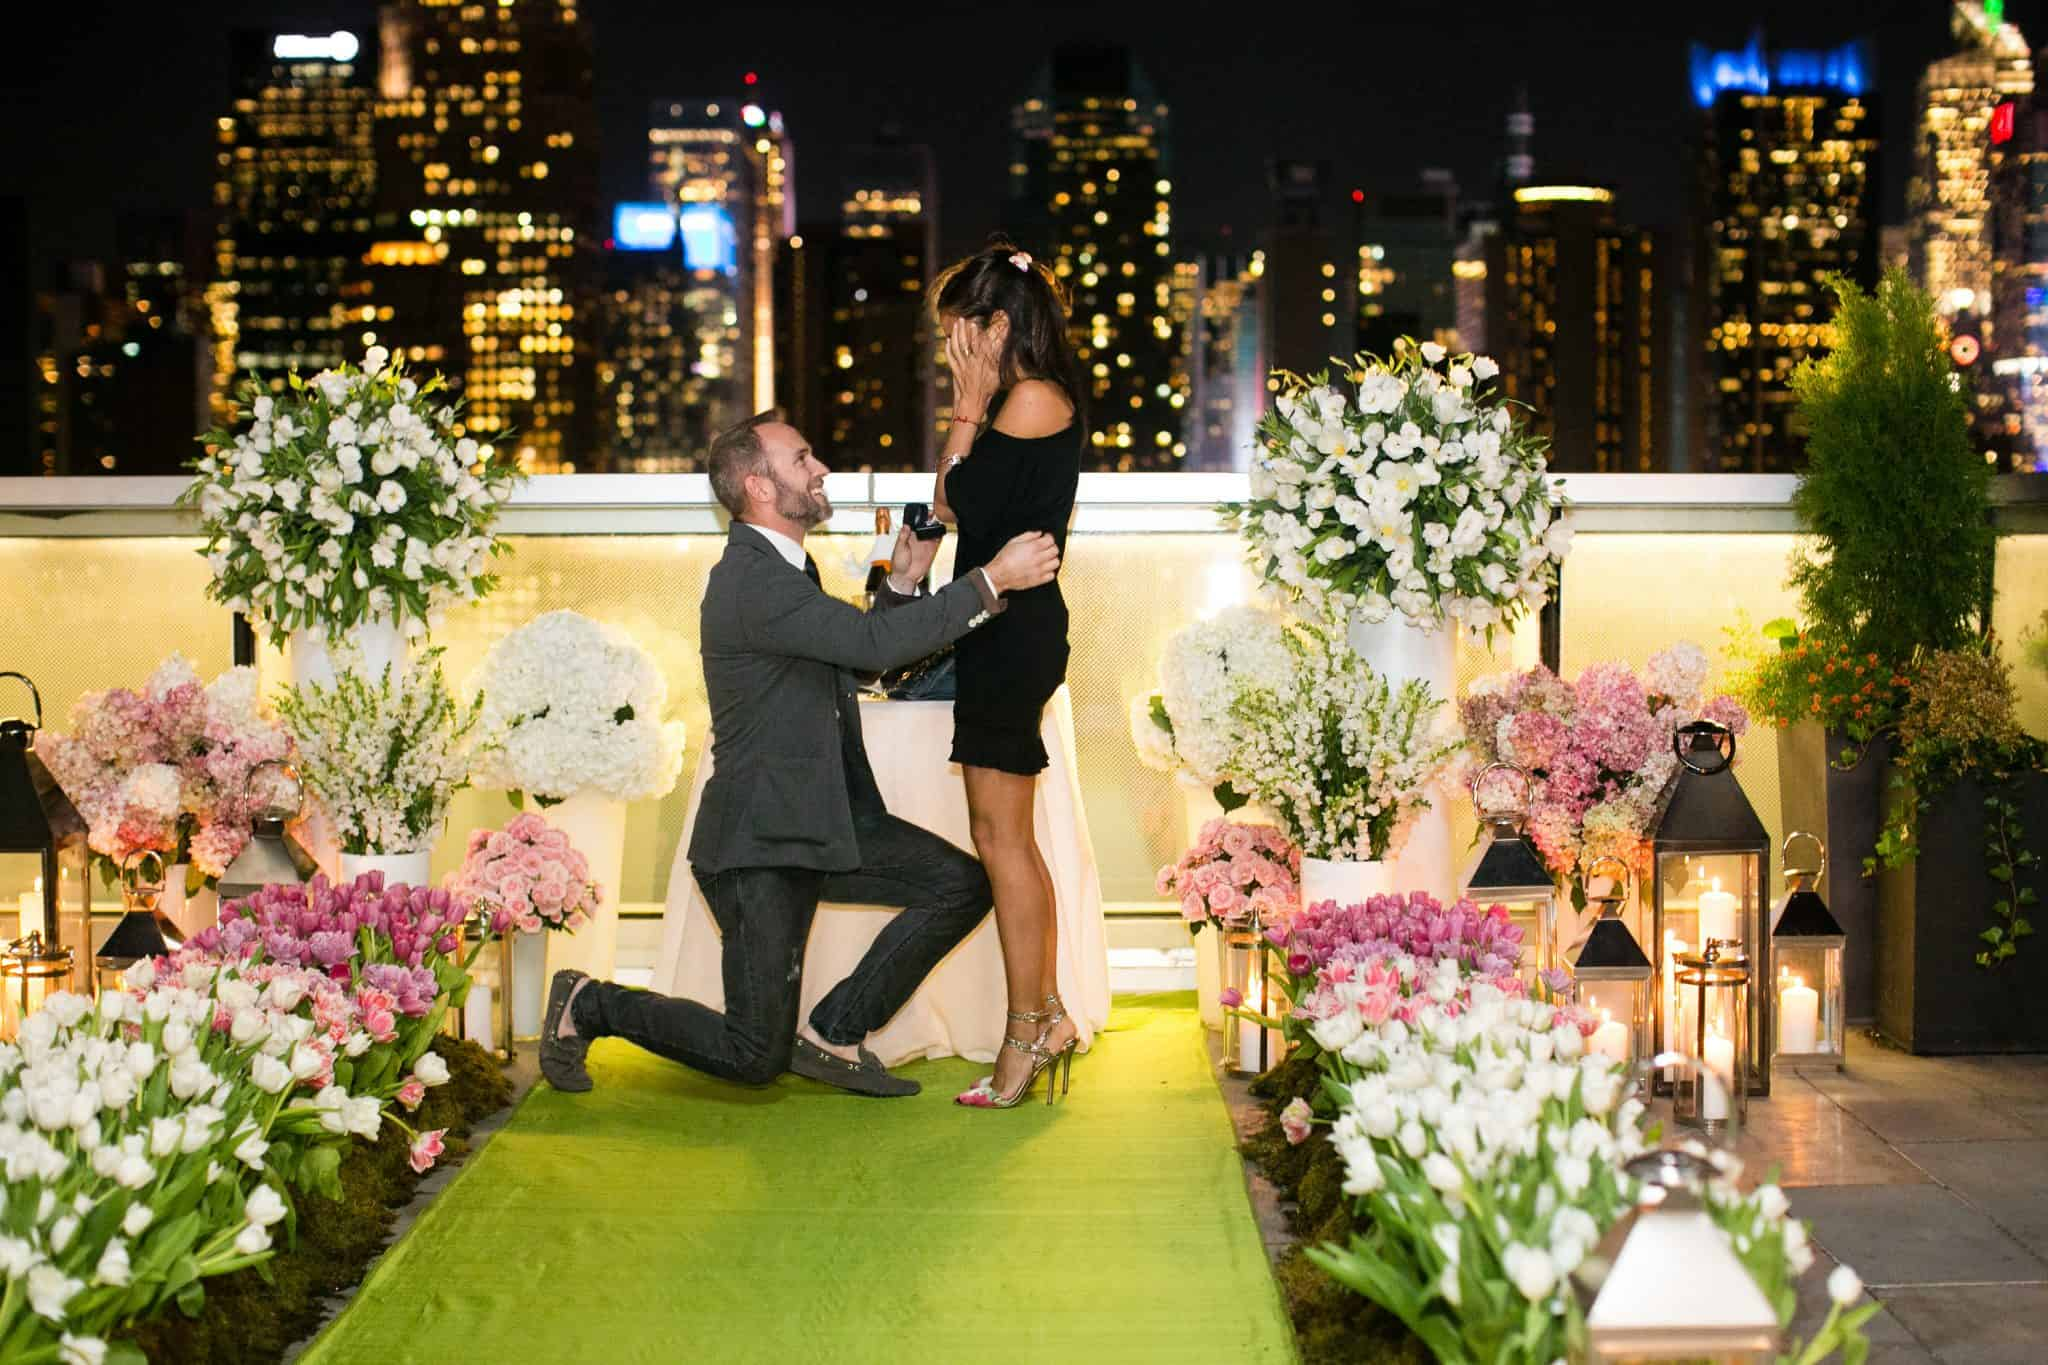 Marriage Proposal New York